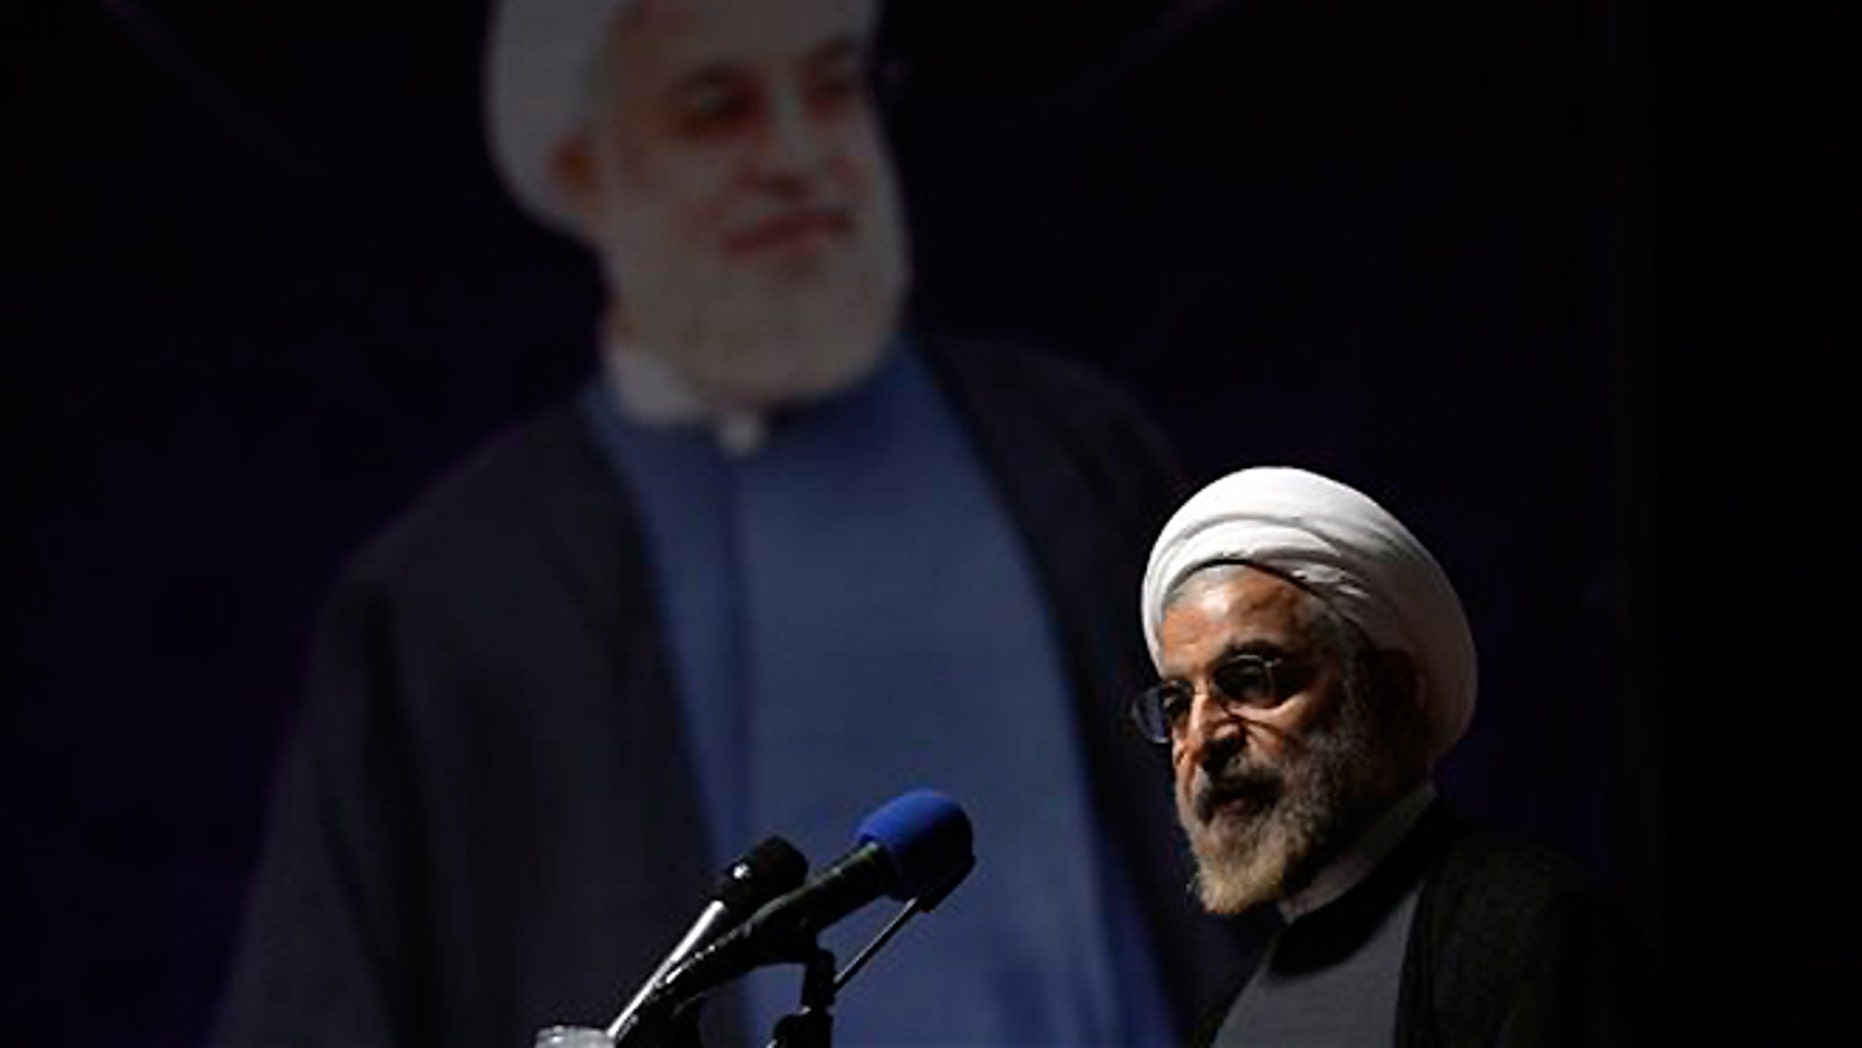 FILE -- May 2, 2013: Iranian President Hasan Rouhani delivers a speech during his campaign for the presidential election in Tehran, Iran. The U.N. has slotted the new moderate-leaning president to address the global gathering of leaders on Sept. 24 -- just hours after U.S. President Barack Obama is scheduled to wrap up his speech.